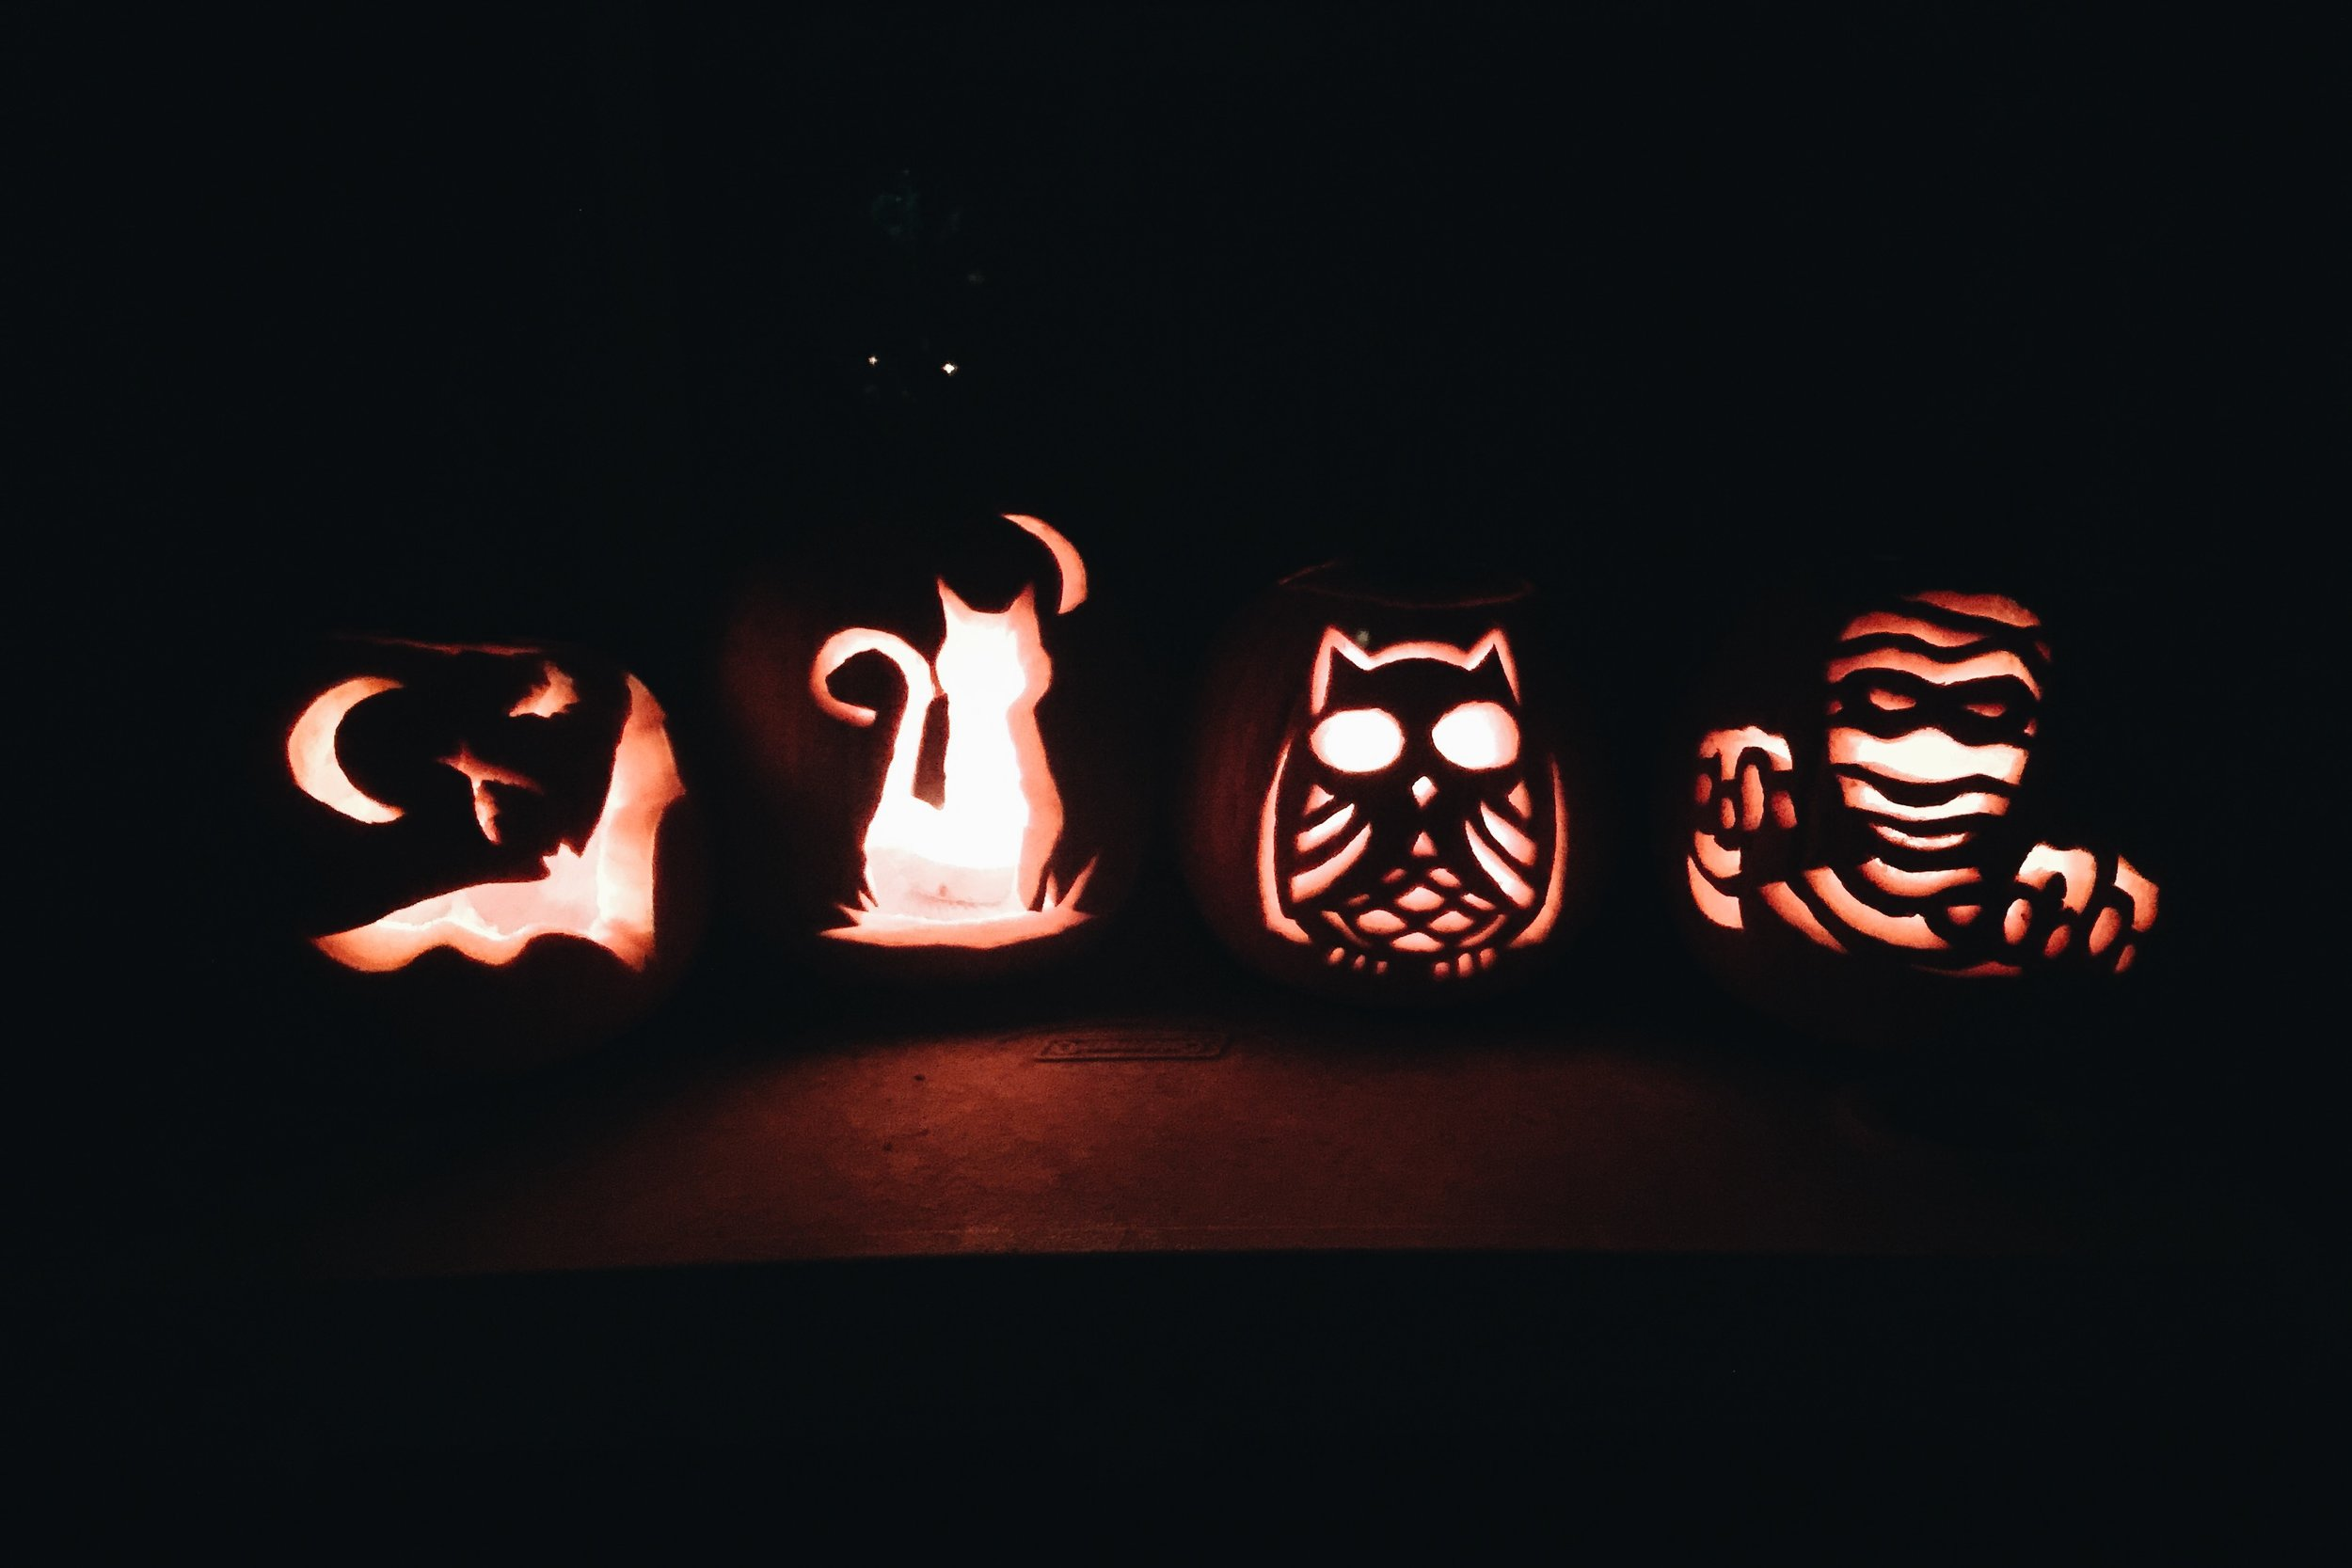 First time carving pumpkins with our friends here in Miami!